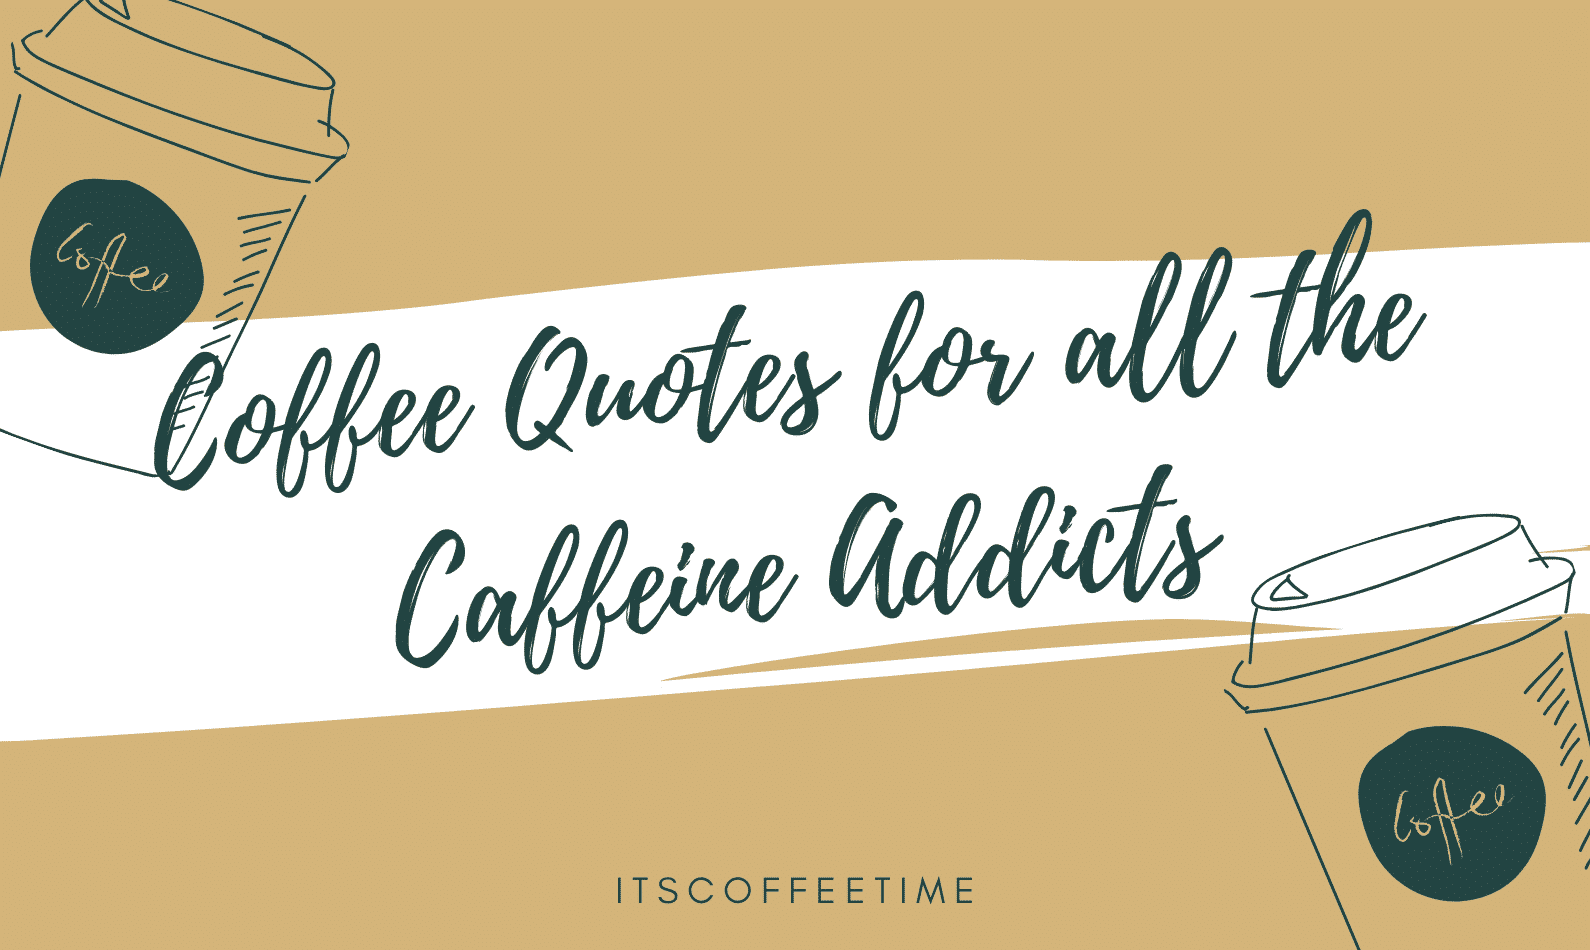 coffee quotes for all the caffeine addicts coffee jokes